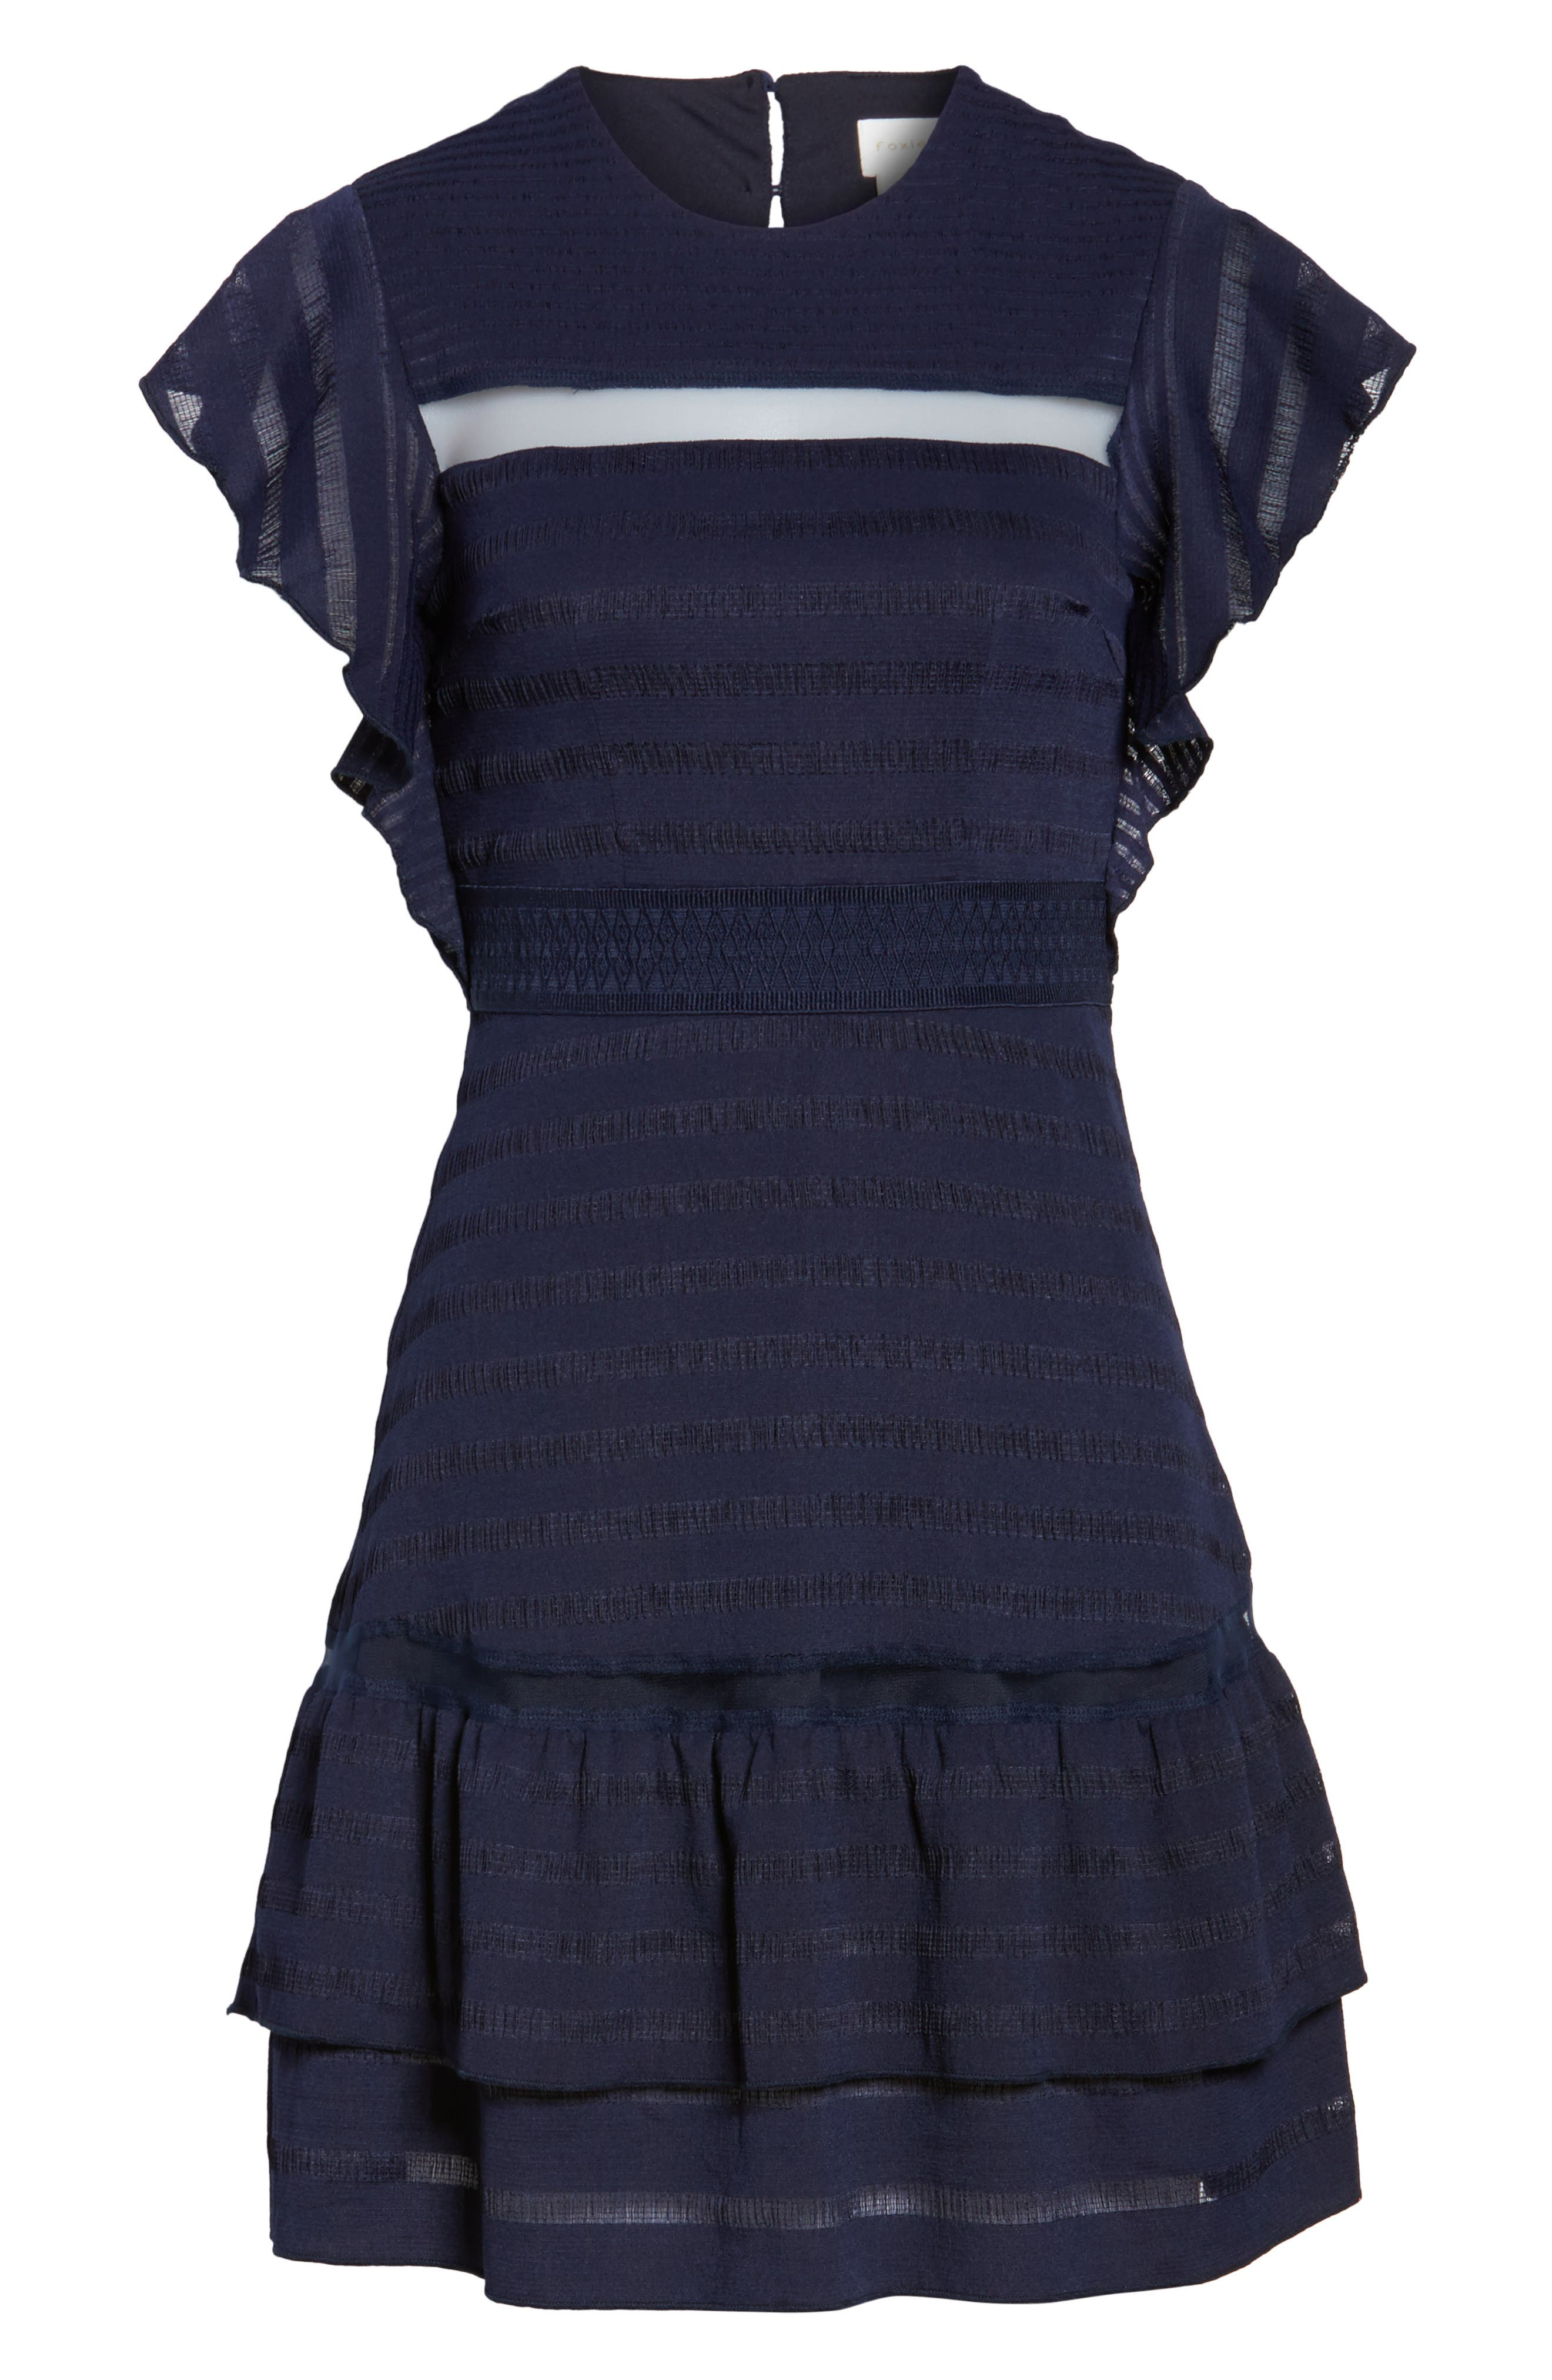 Elsie Ruffle Sleeve Fit & Flare Dress,                             Alternate thumbnail 6, color,                             Navy